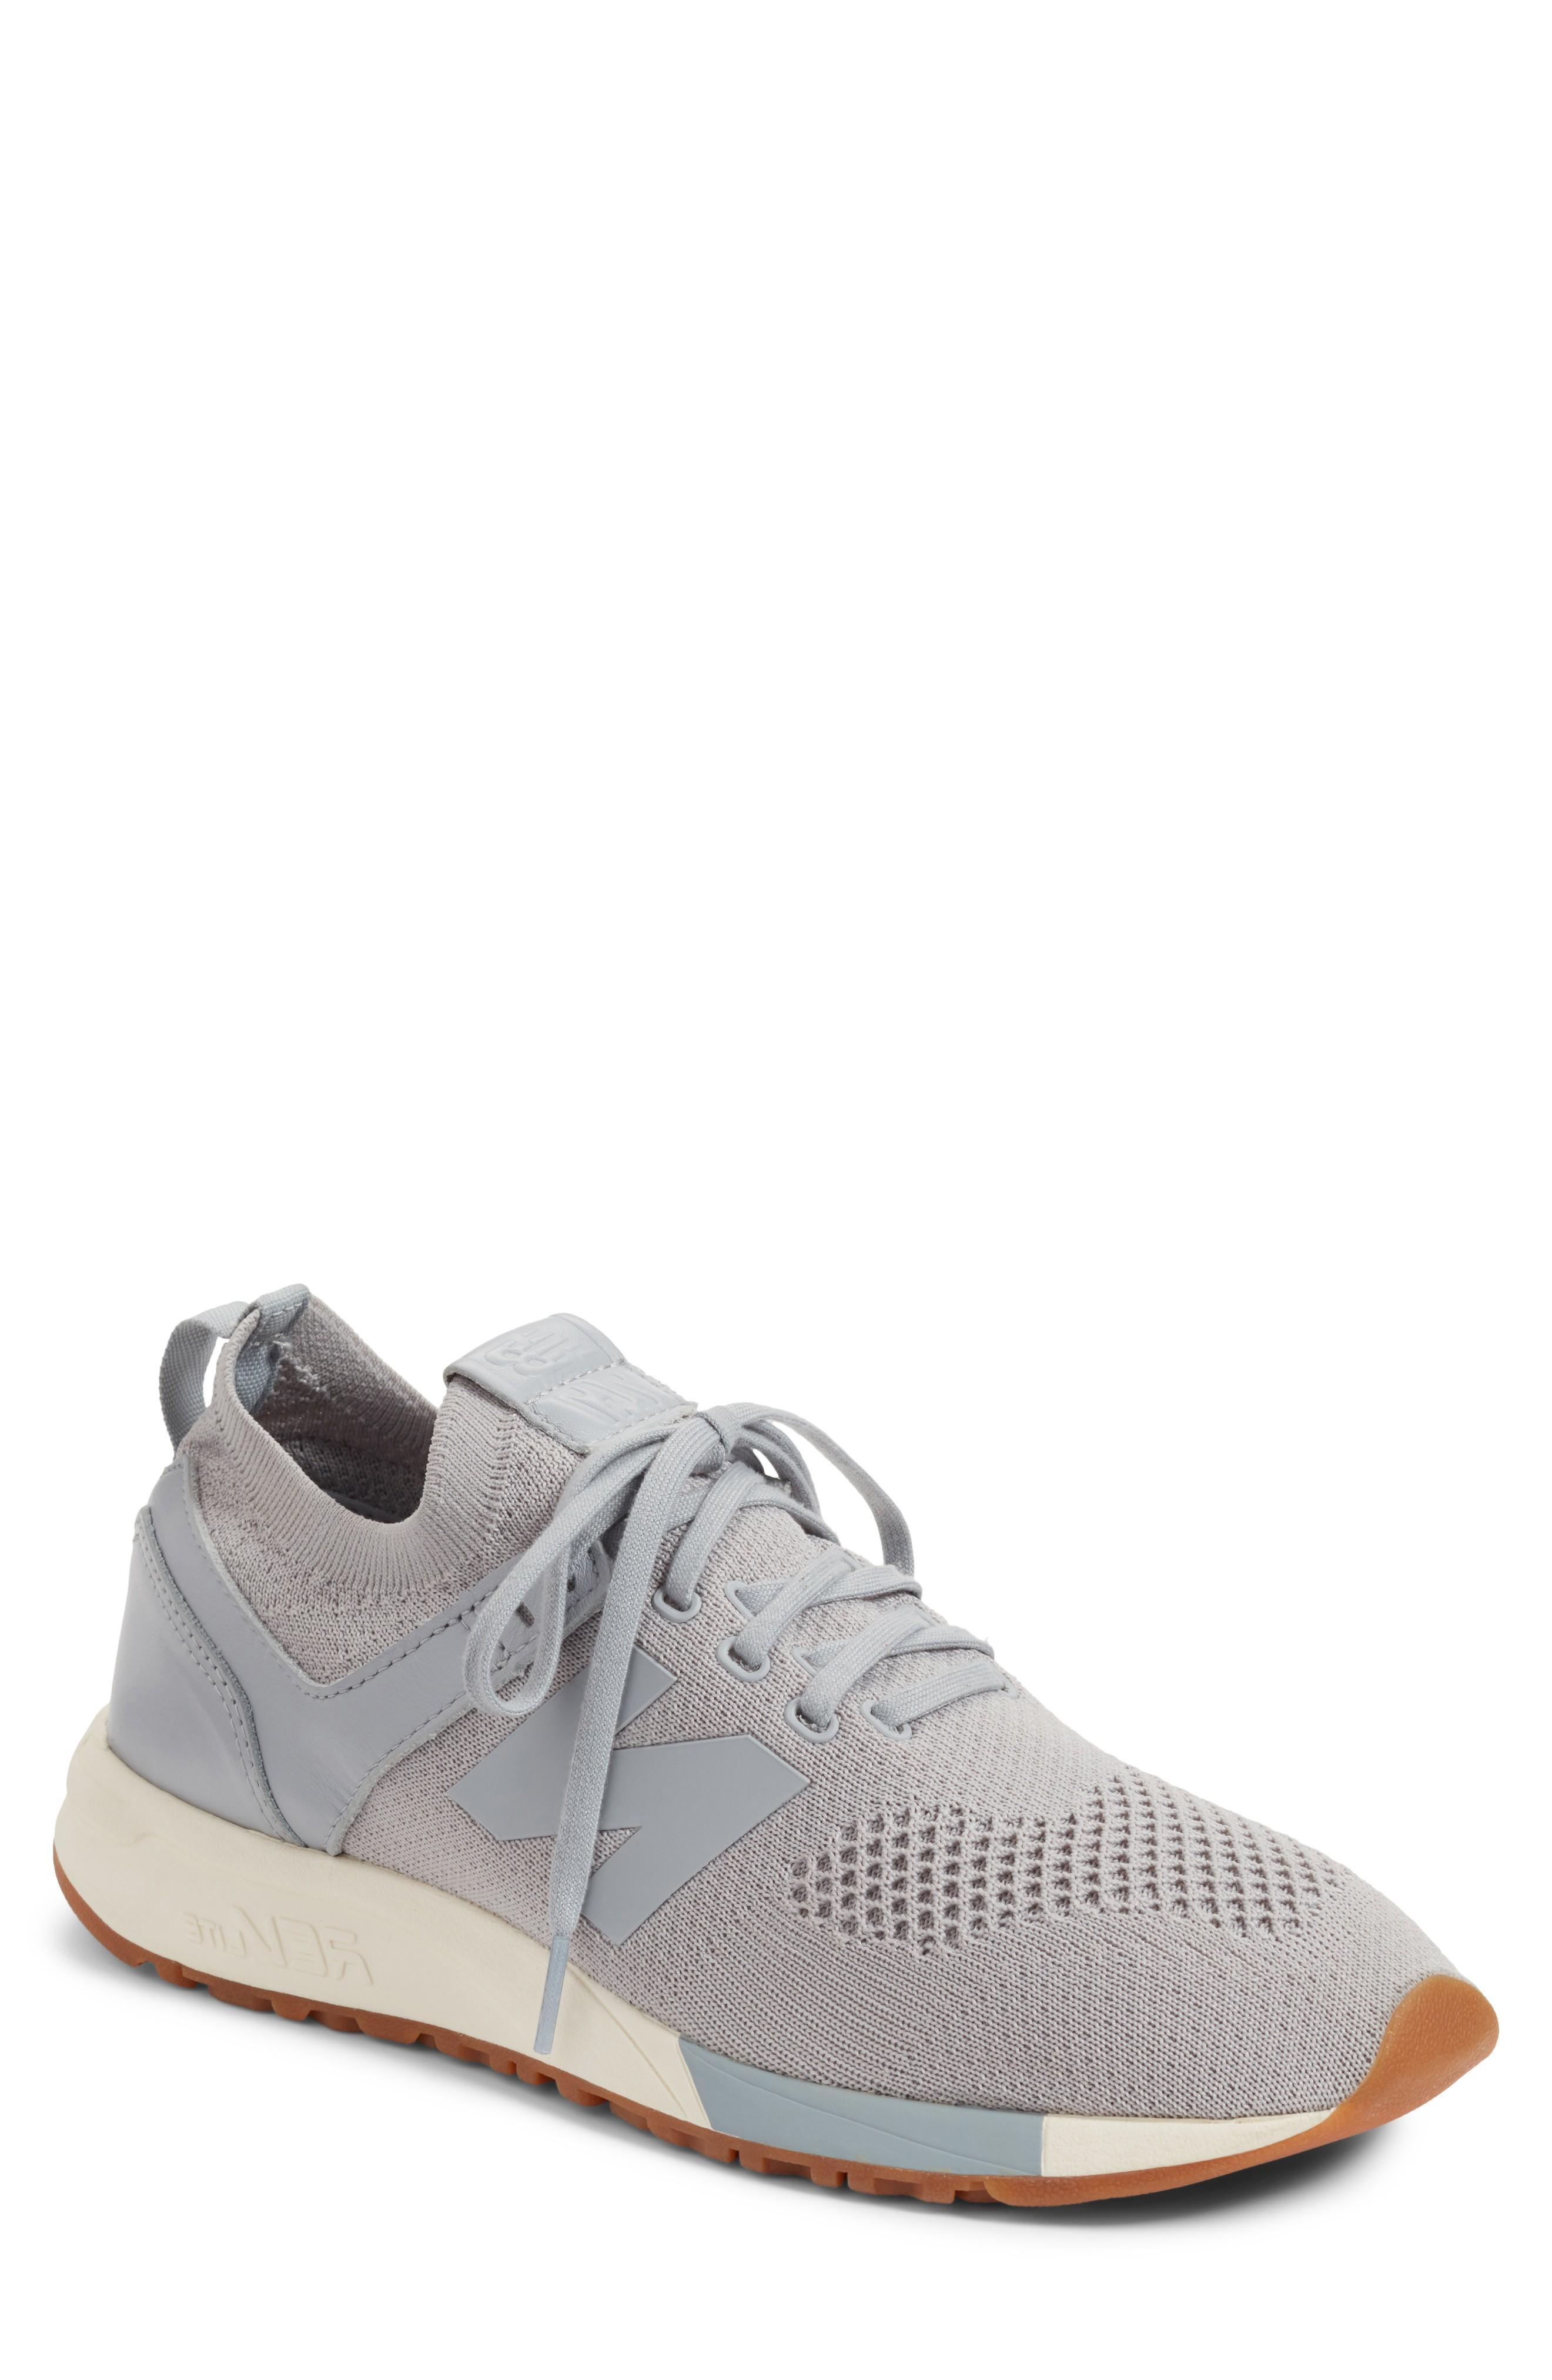 Men's 247 Decon Casual Sneakers From Finish Line in GreyWhite